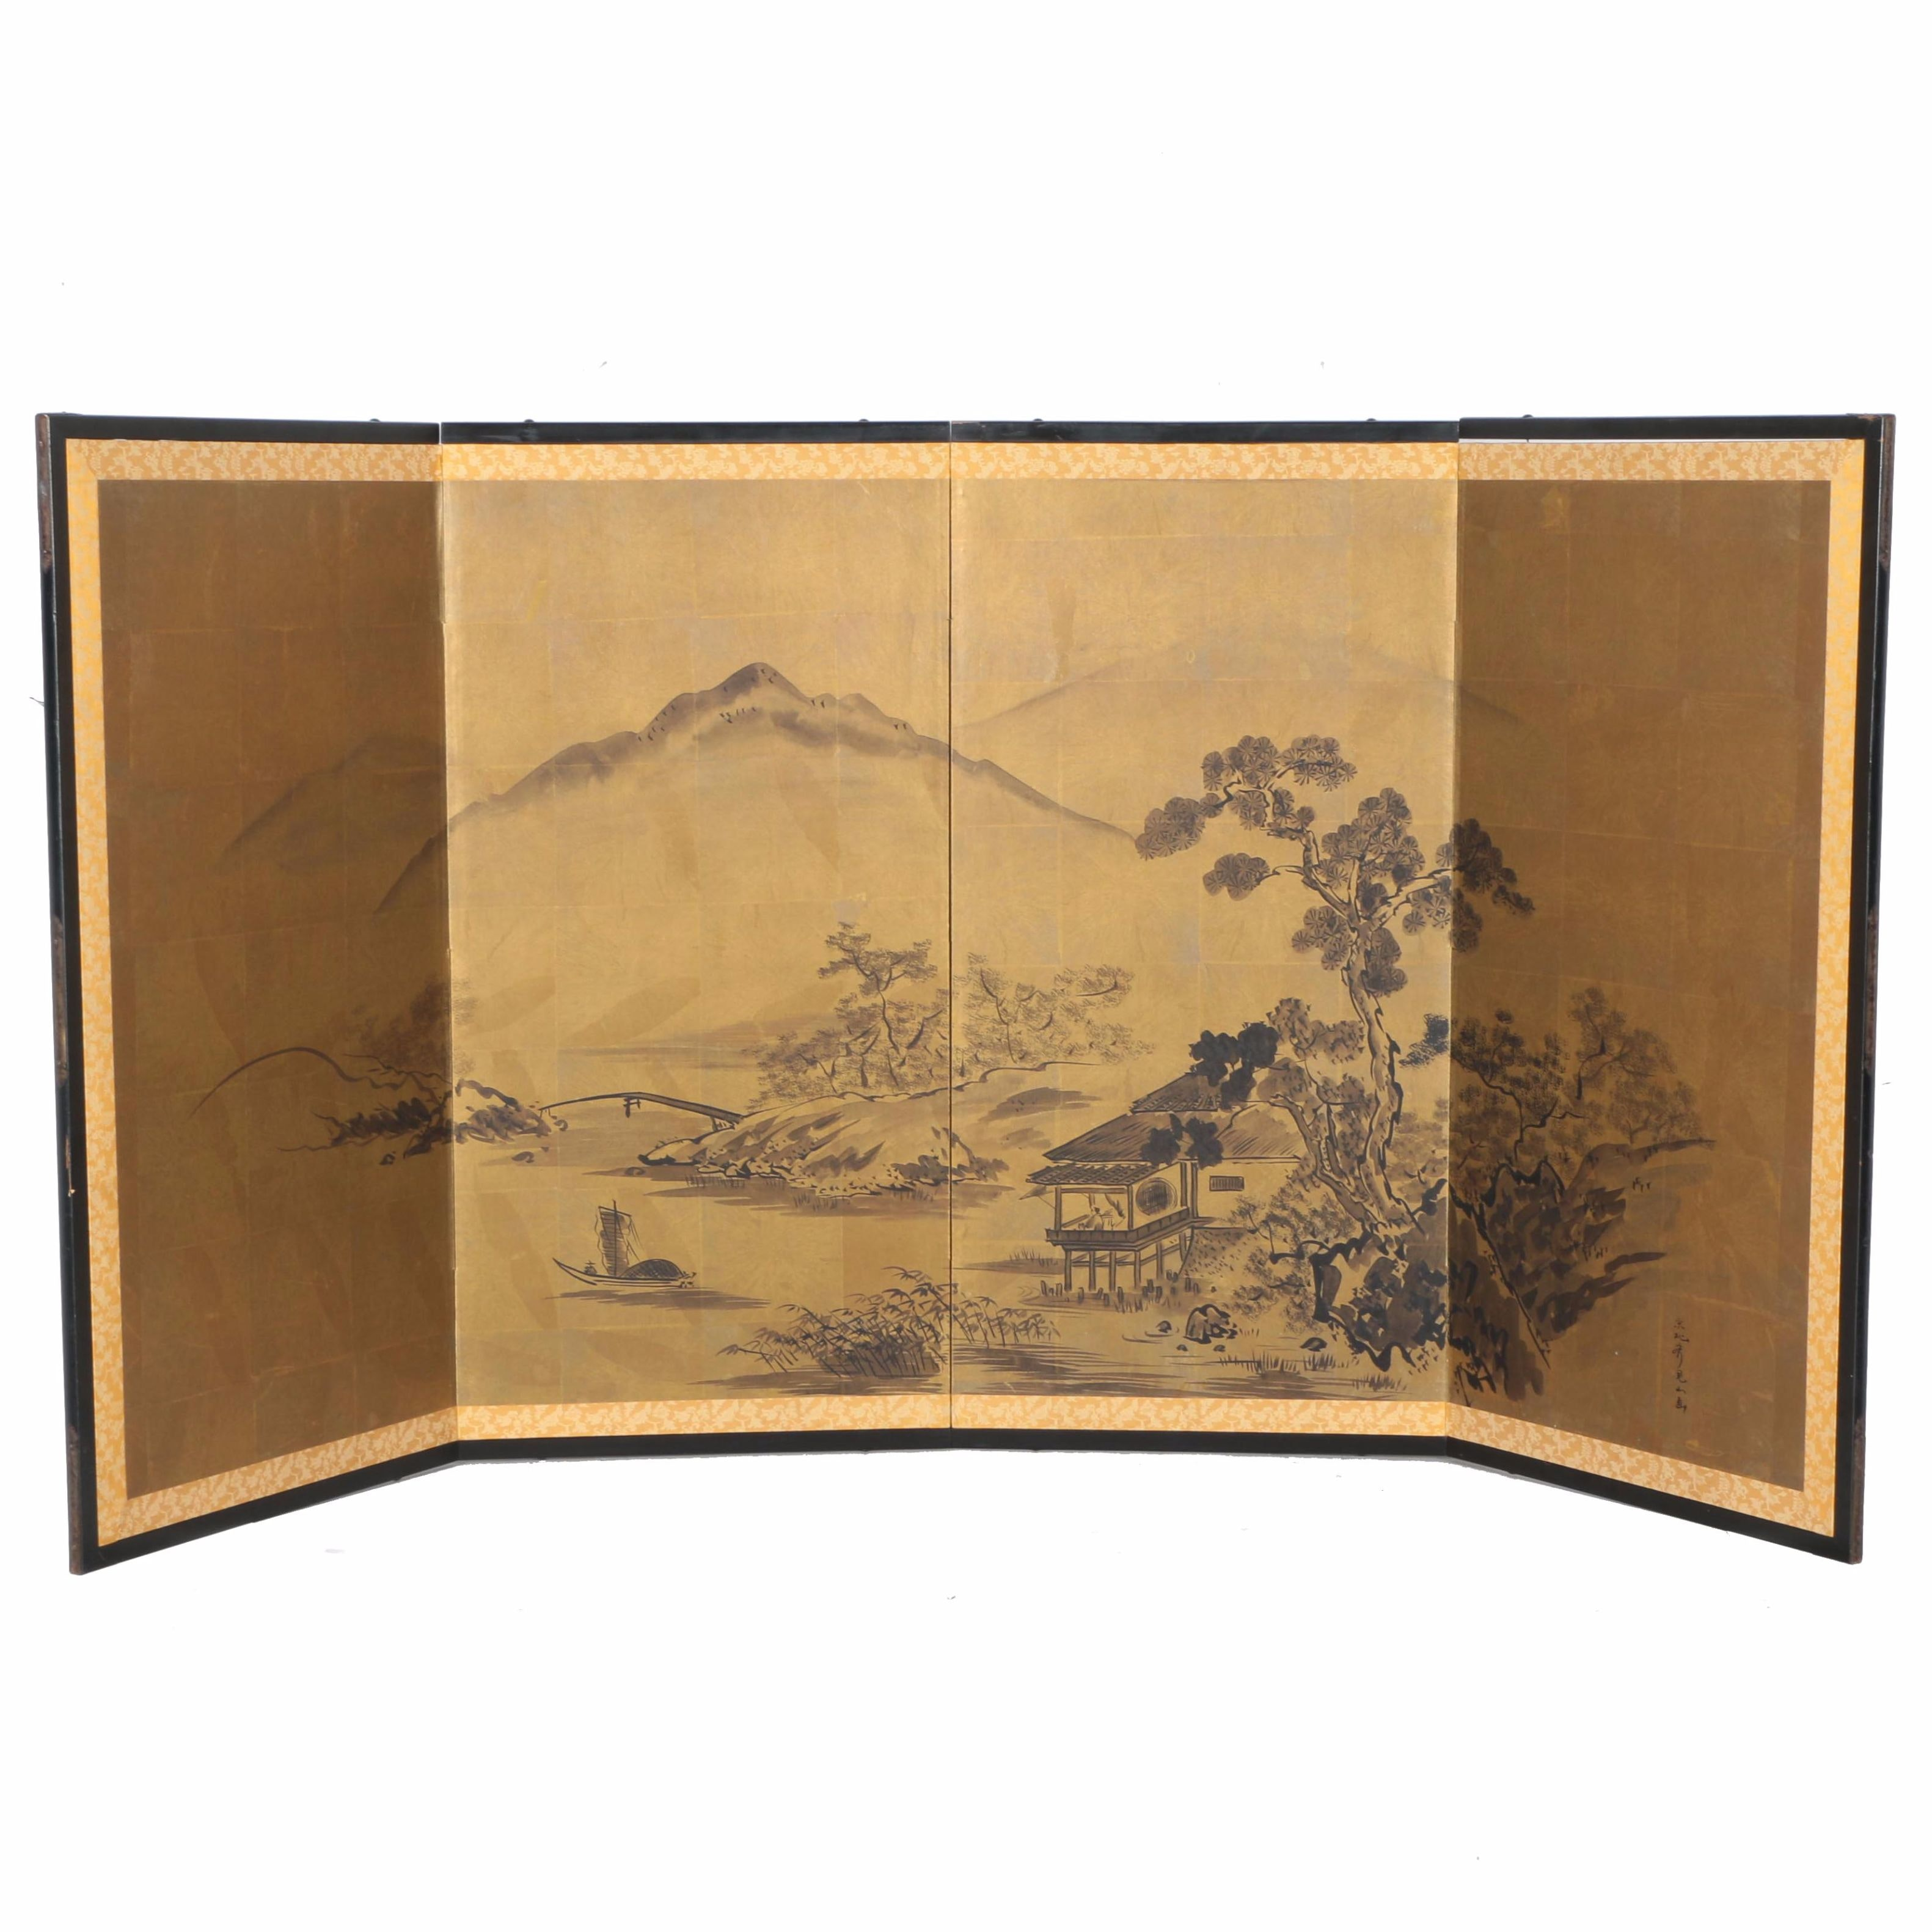 Hand-Painted Four-Panel Japanese Folding Screen